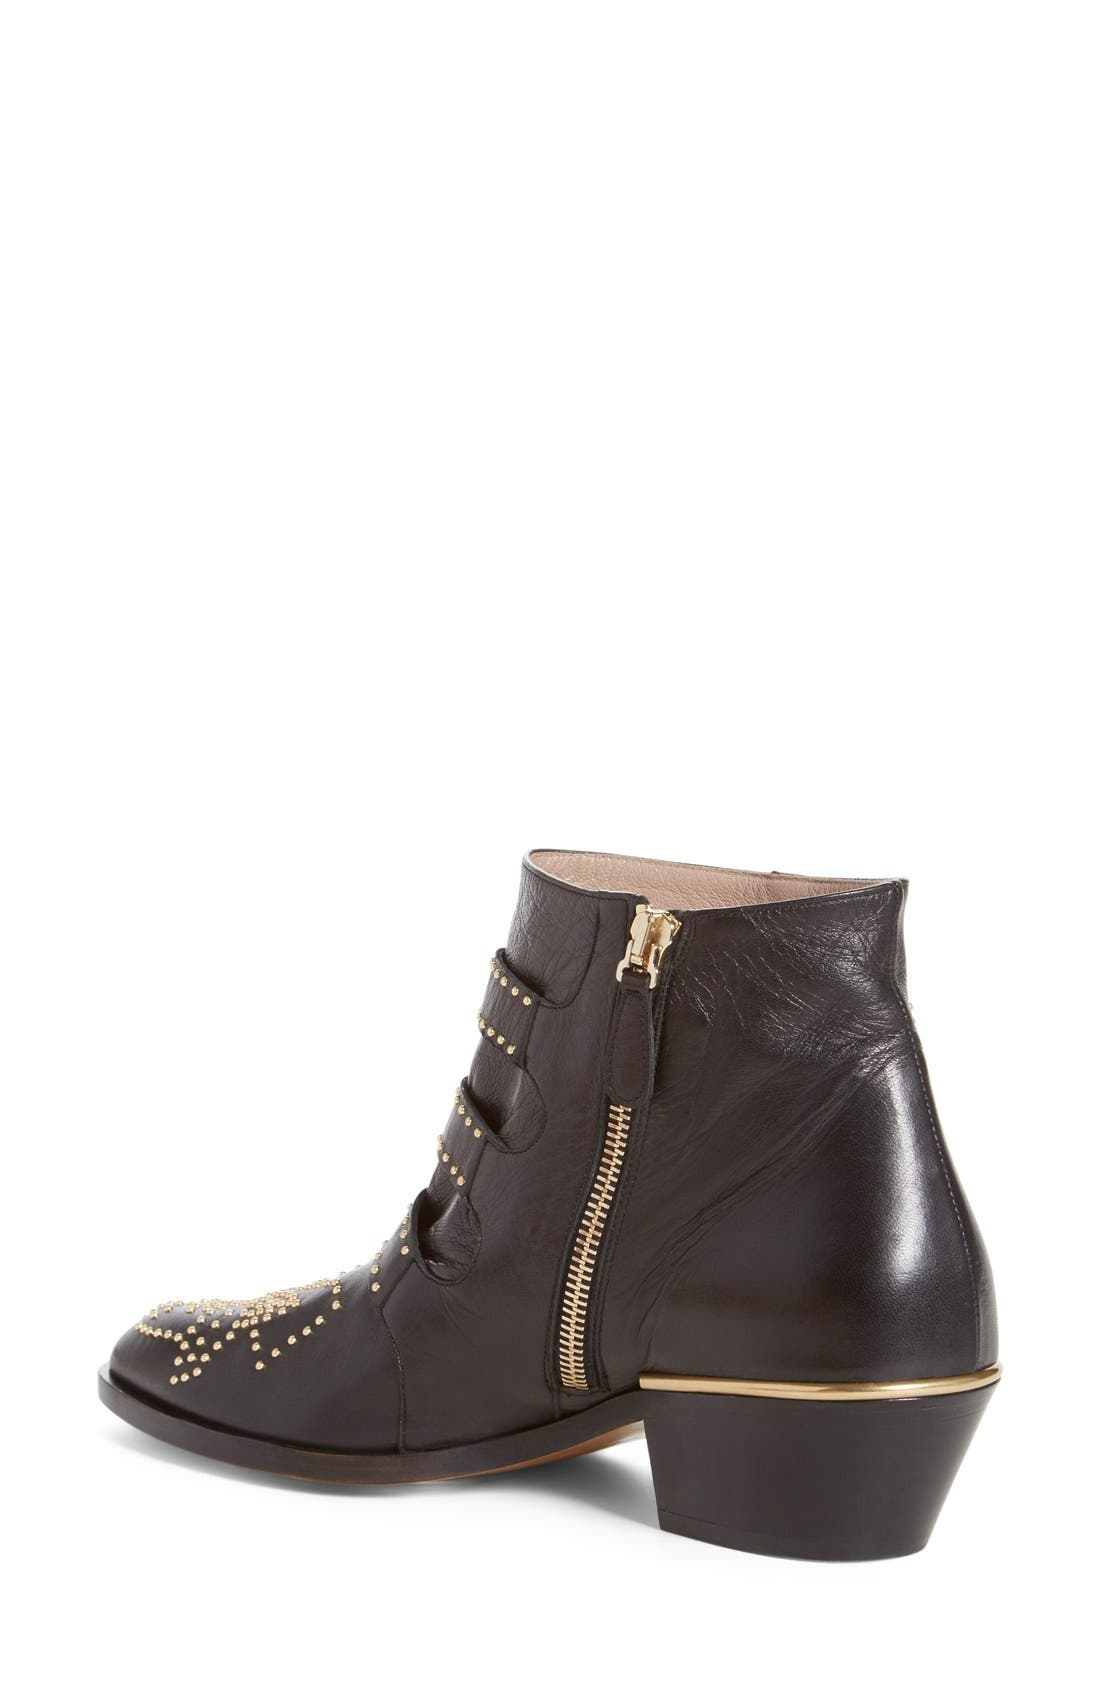 CHLOÉ, Susanna Stud Buckle Bootie, Alternate thumbnail 9, color, BLACK GOLD LEATHER